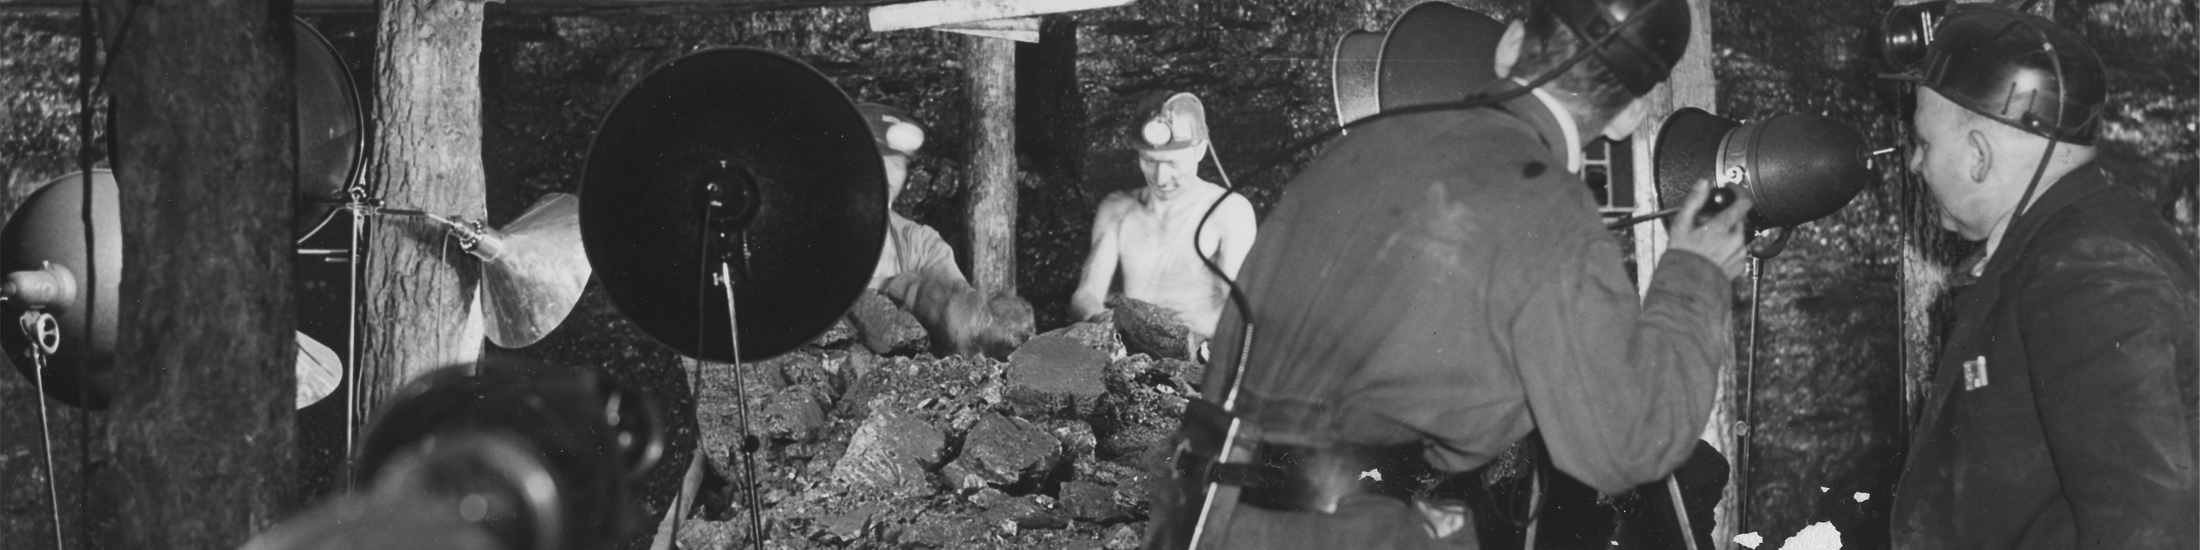 Coal miners in West Virginia are filmed by a tv crew with cameras